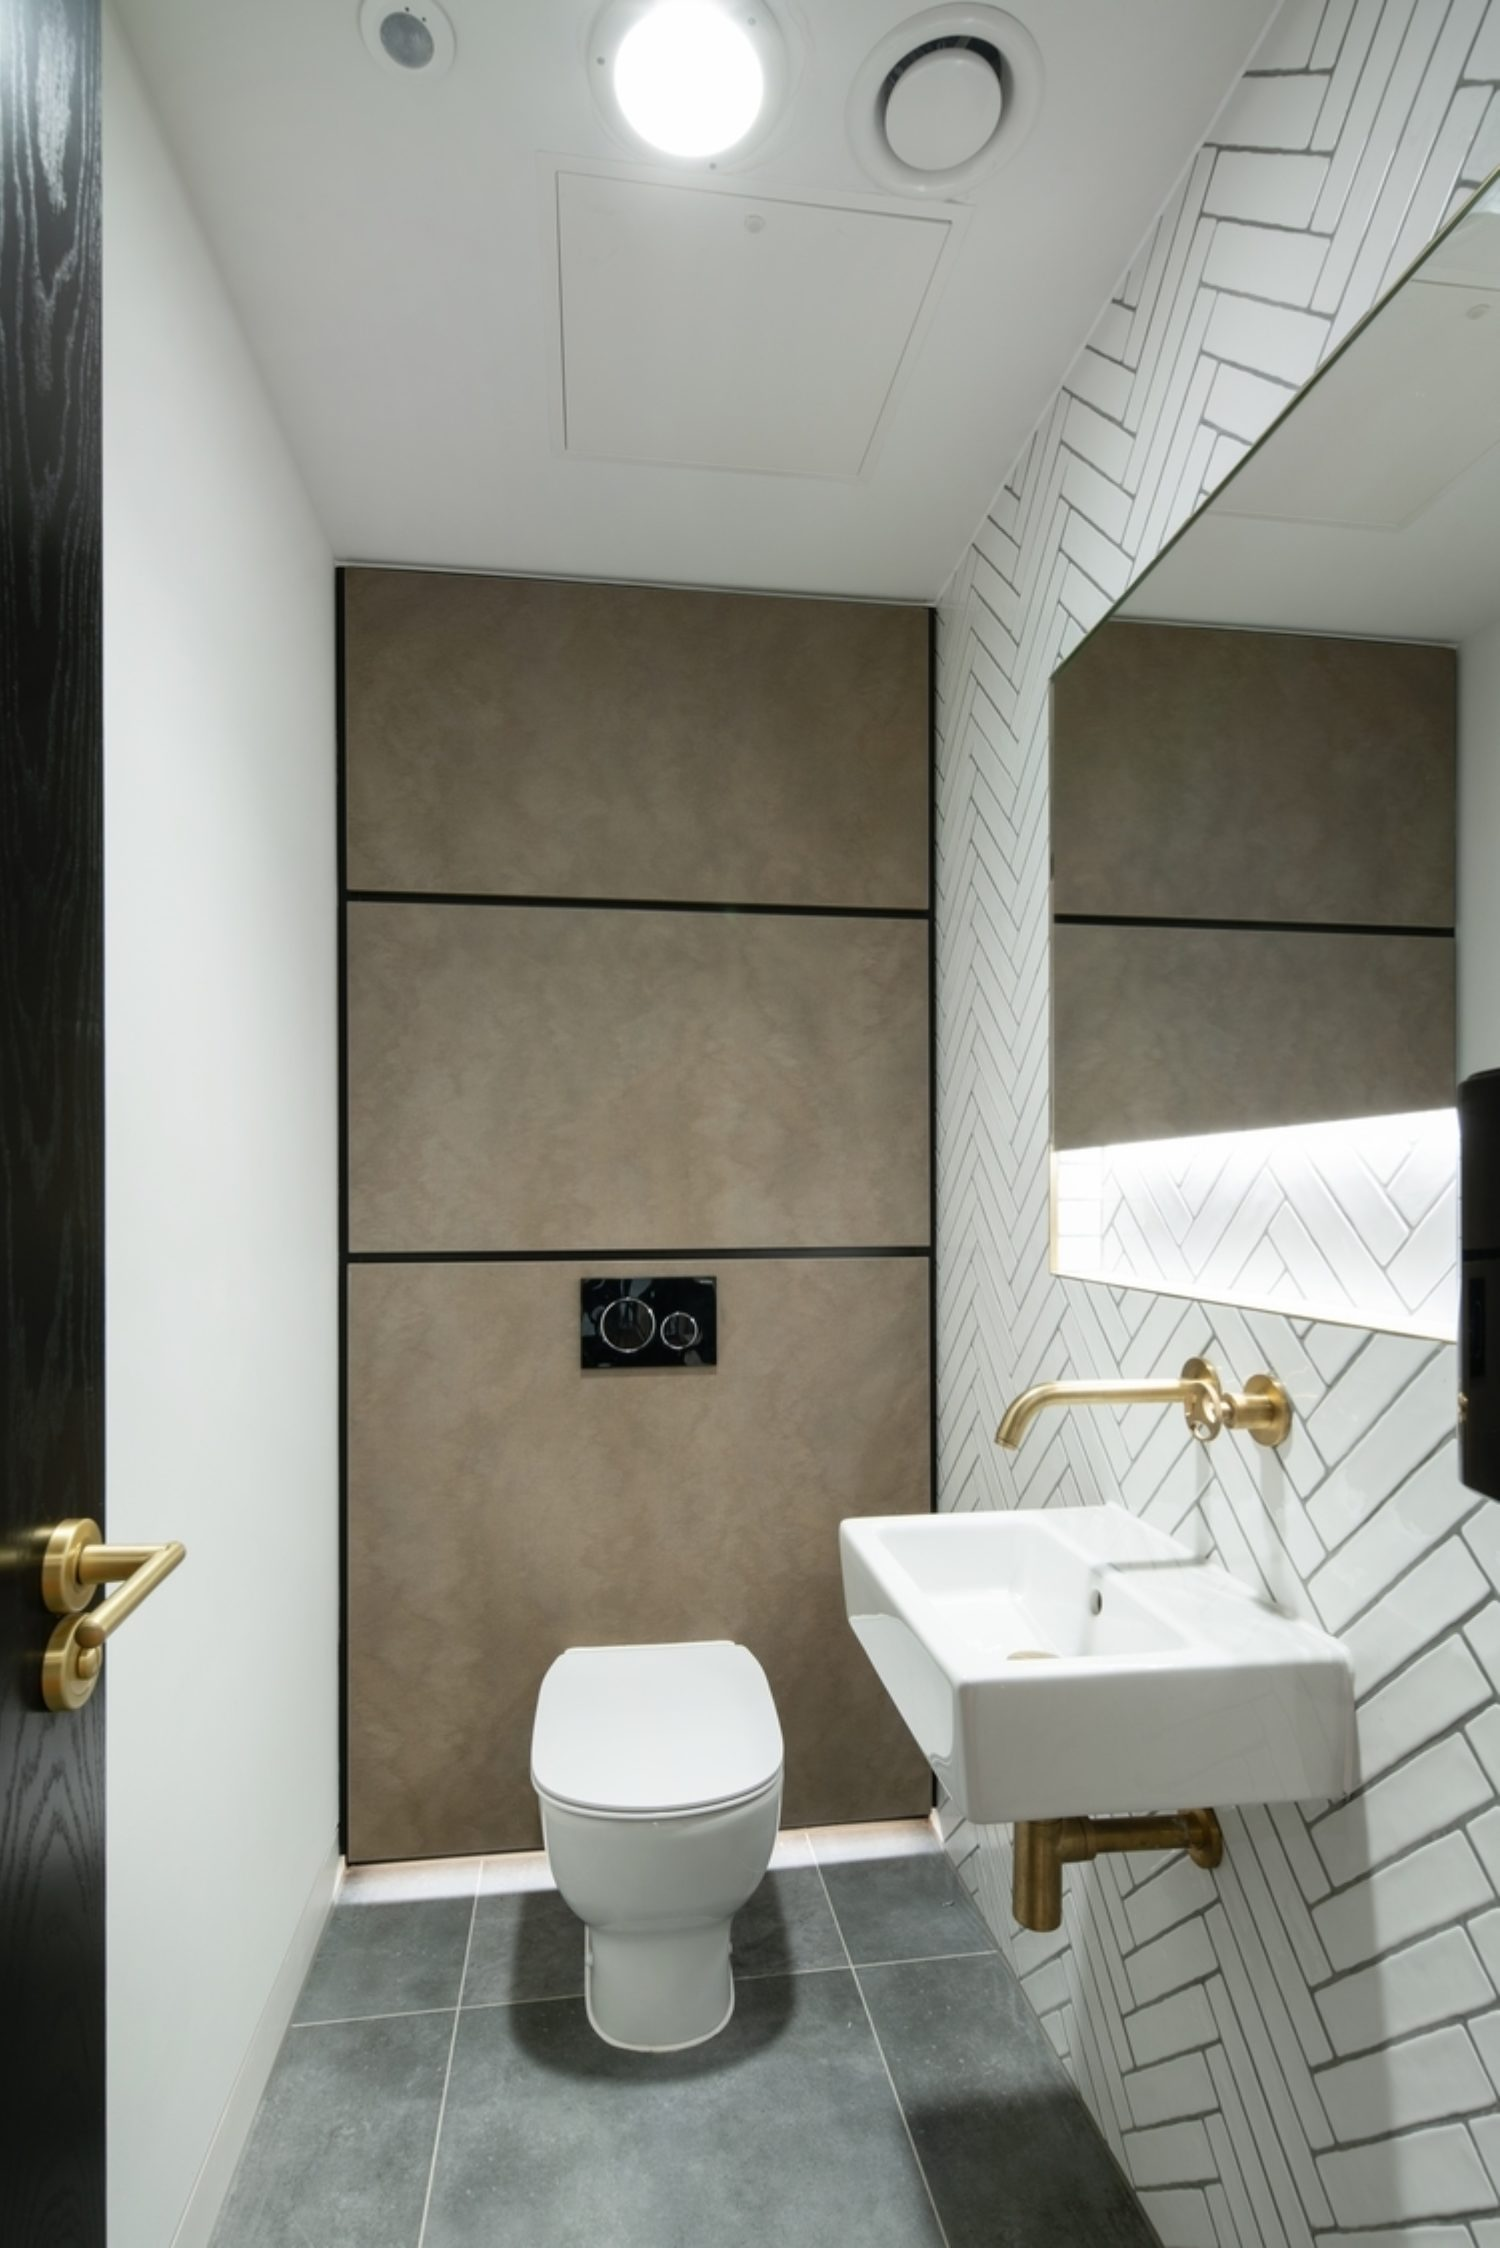 Cally Yard office design toilets